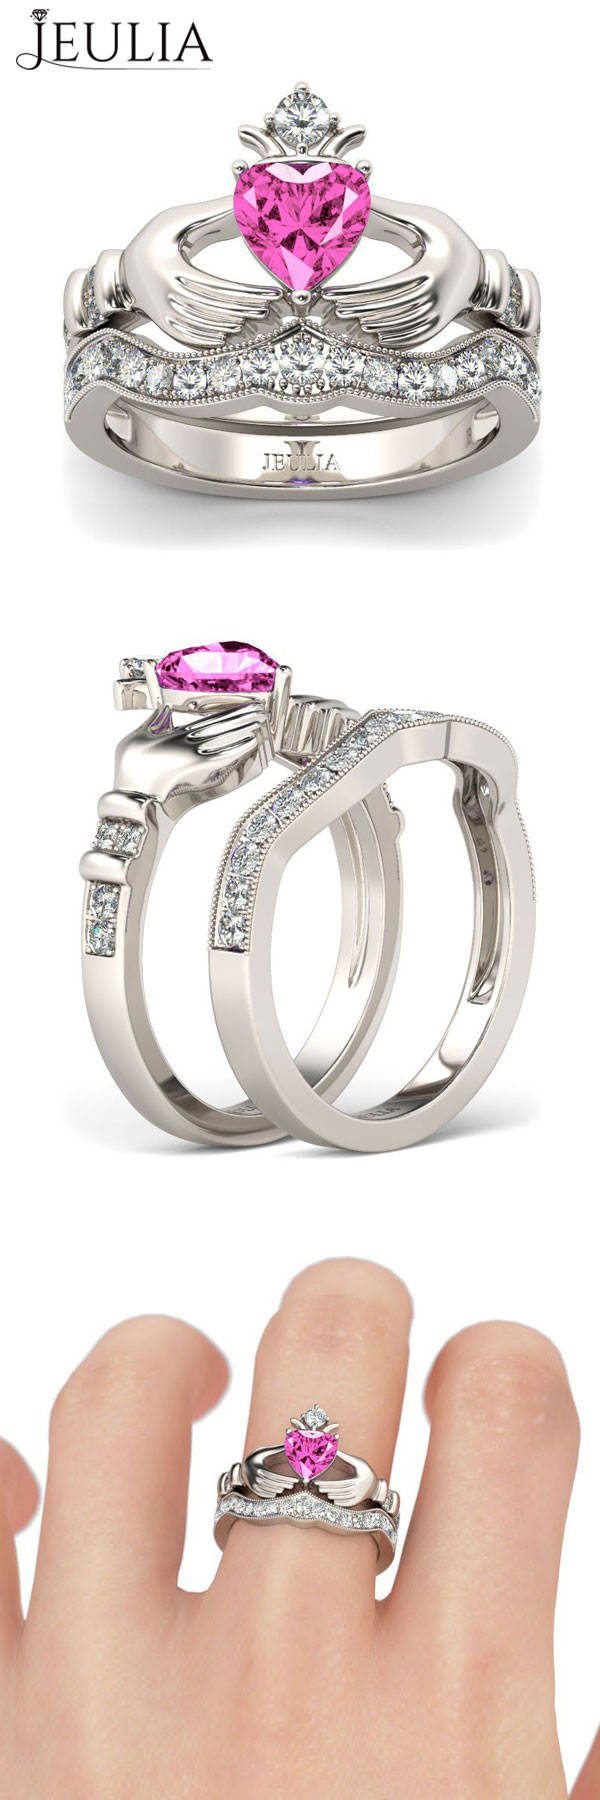 heart cut created pink sapphire claddagh ring set | silver